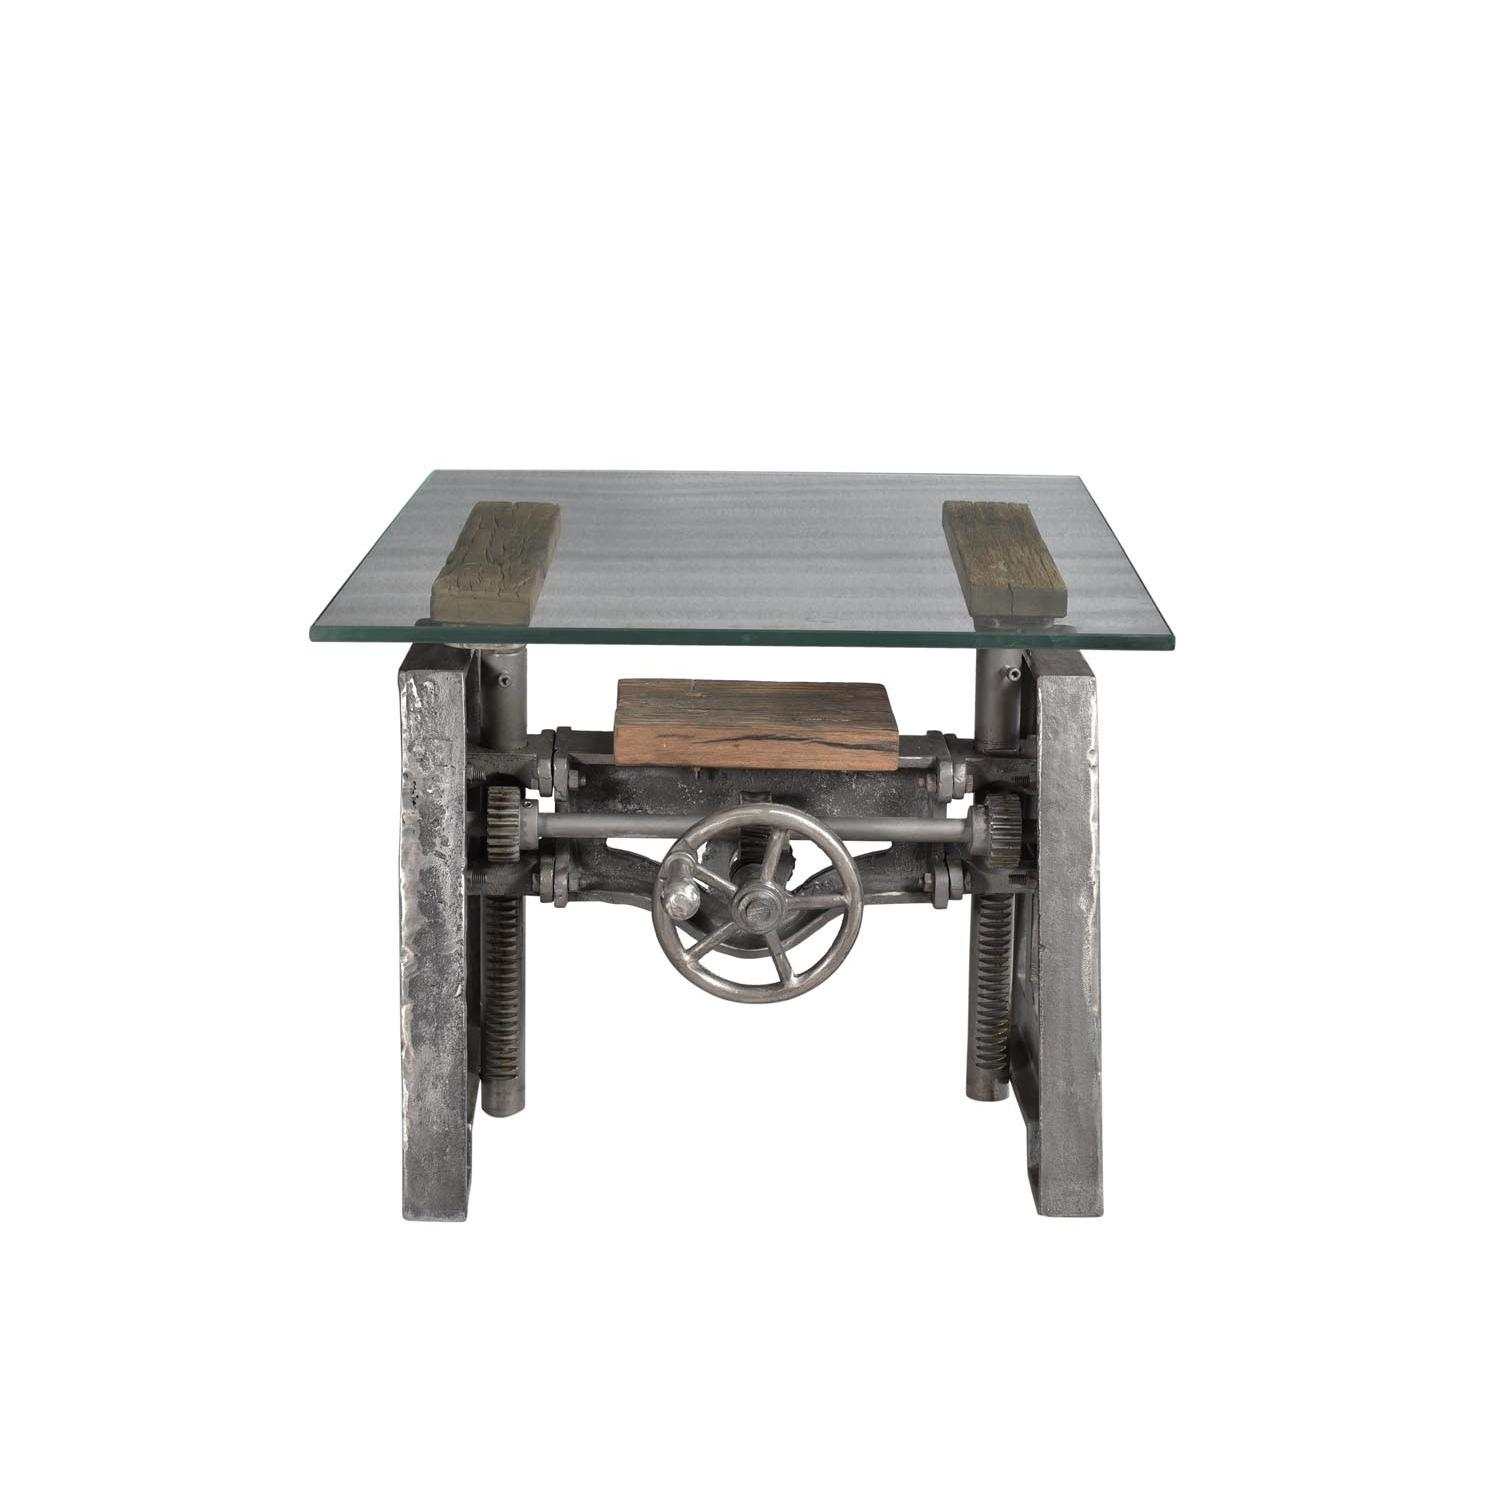 Designe Gallerie A-End Table w/ Glass-Top